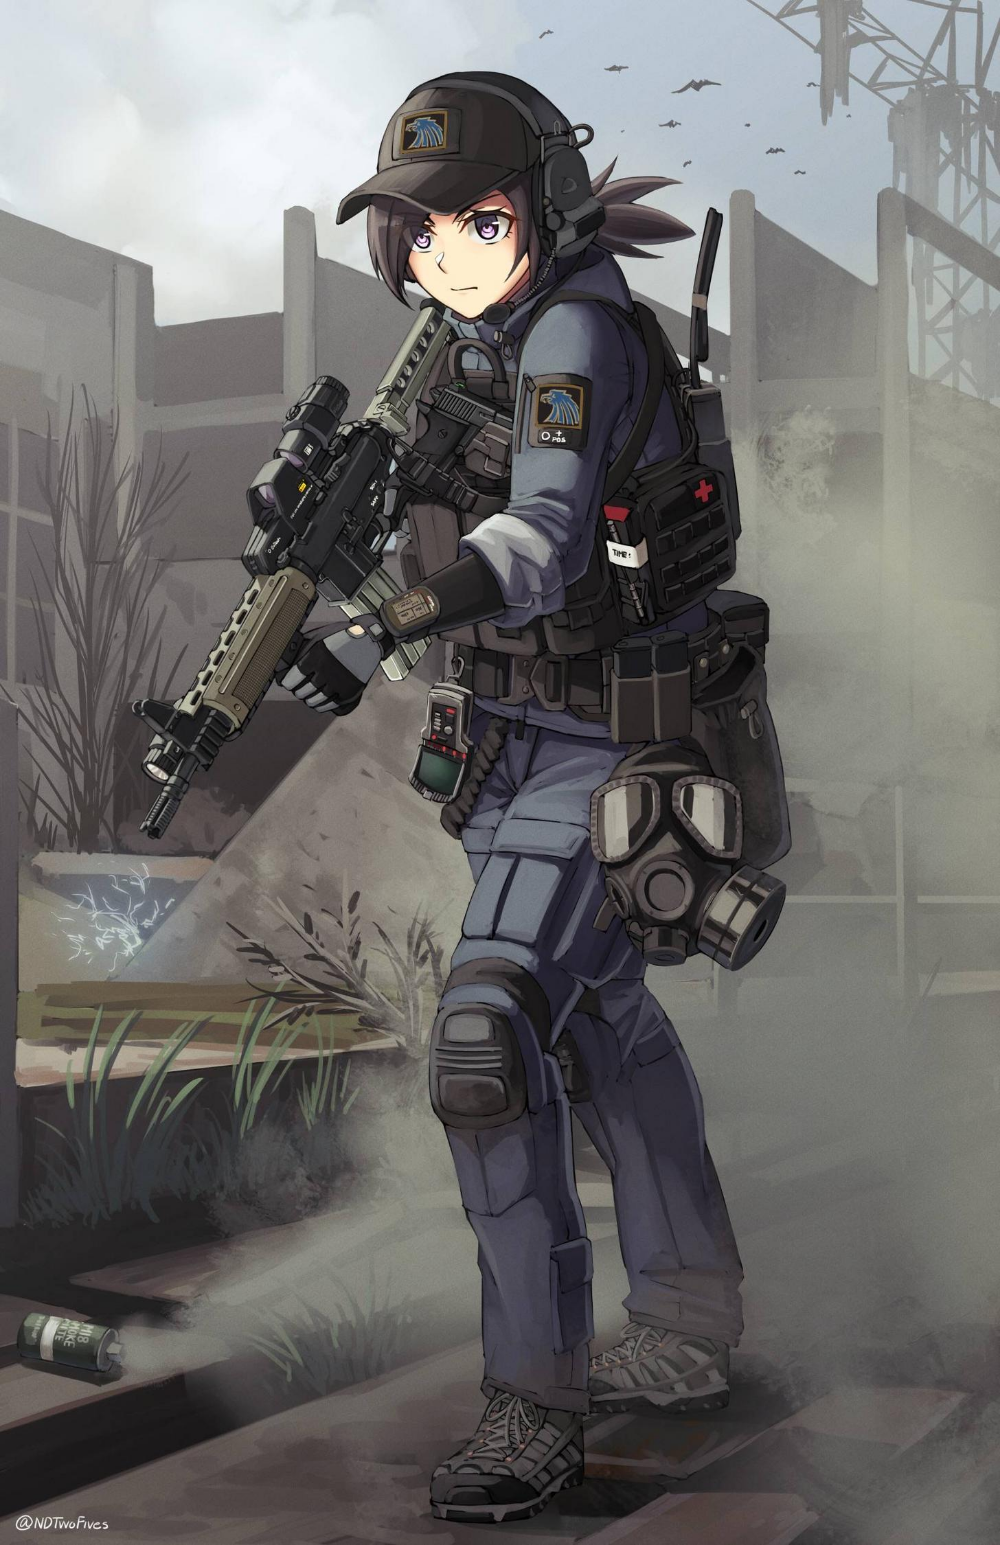 L300 [S.T.A.L.K.E.R] in 2020 Anime military, Character